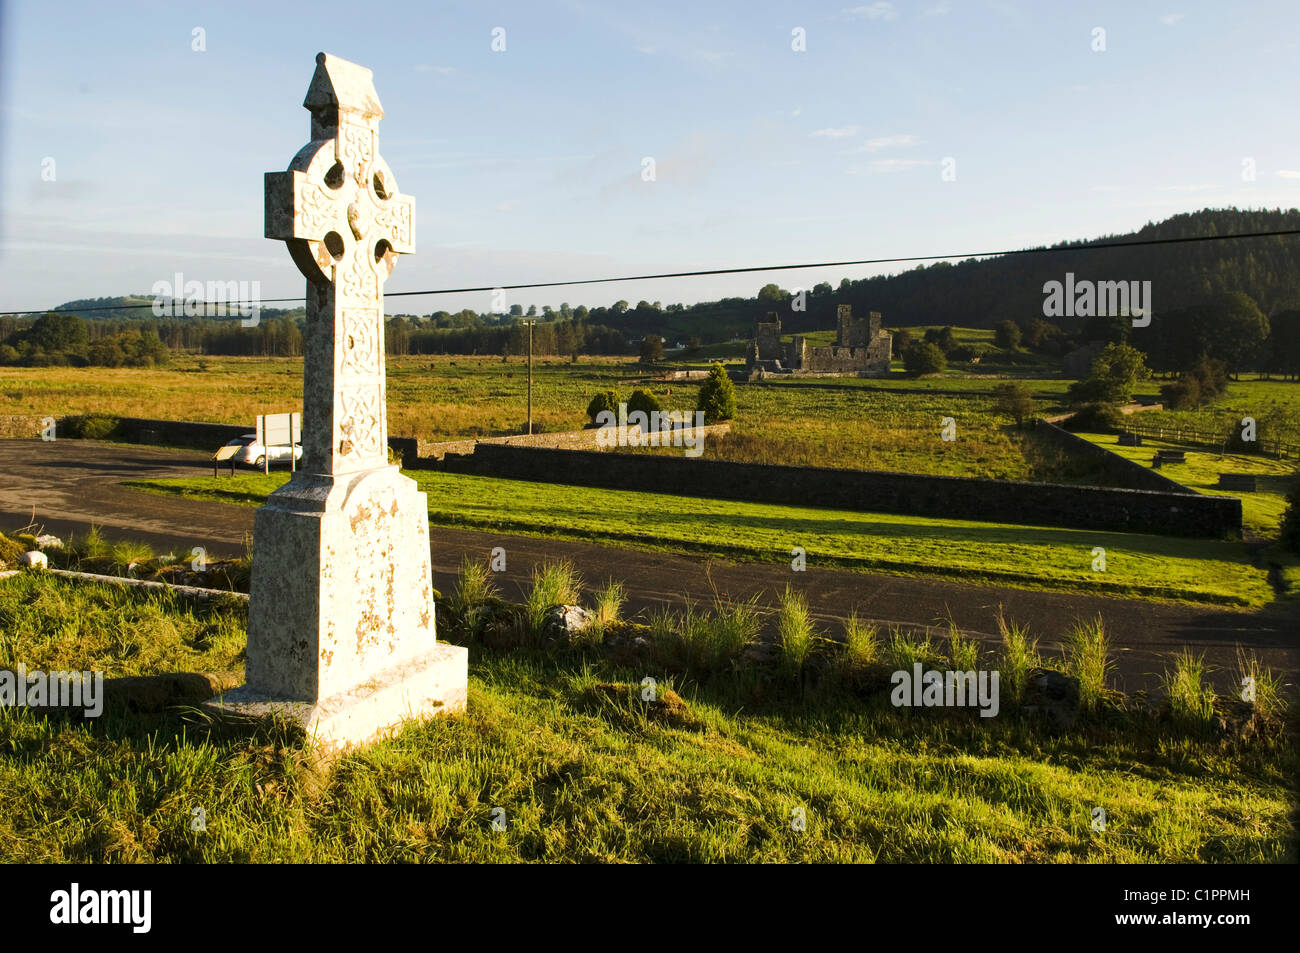 Republic of Ireland, Boyne Valley, Celtic Cross in graveyard of St Feichin's Church, Fore Abbey in distance. - Stock Image